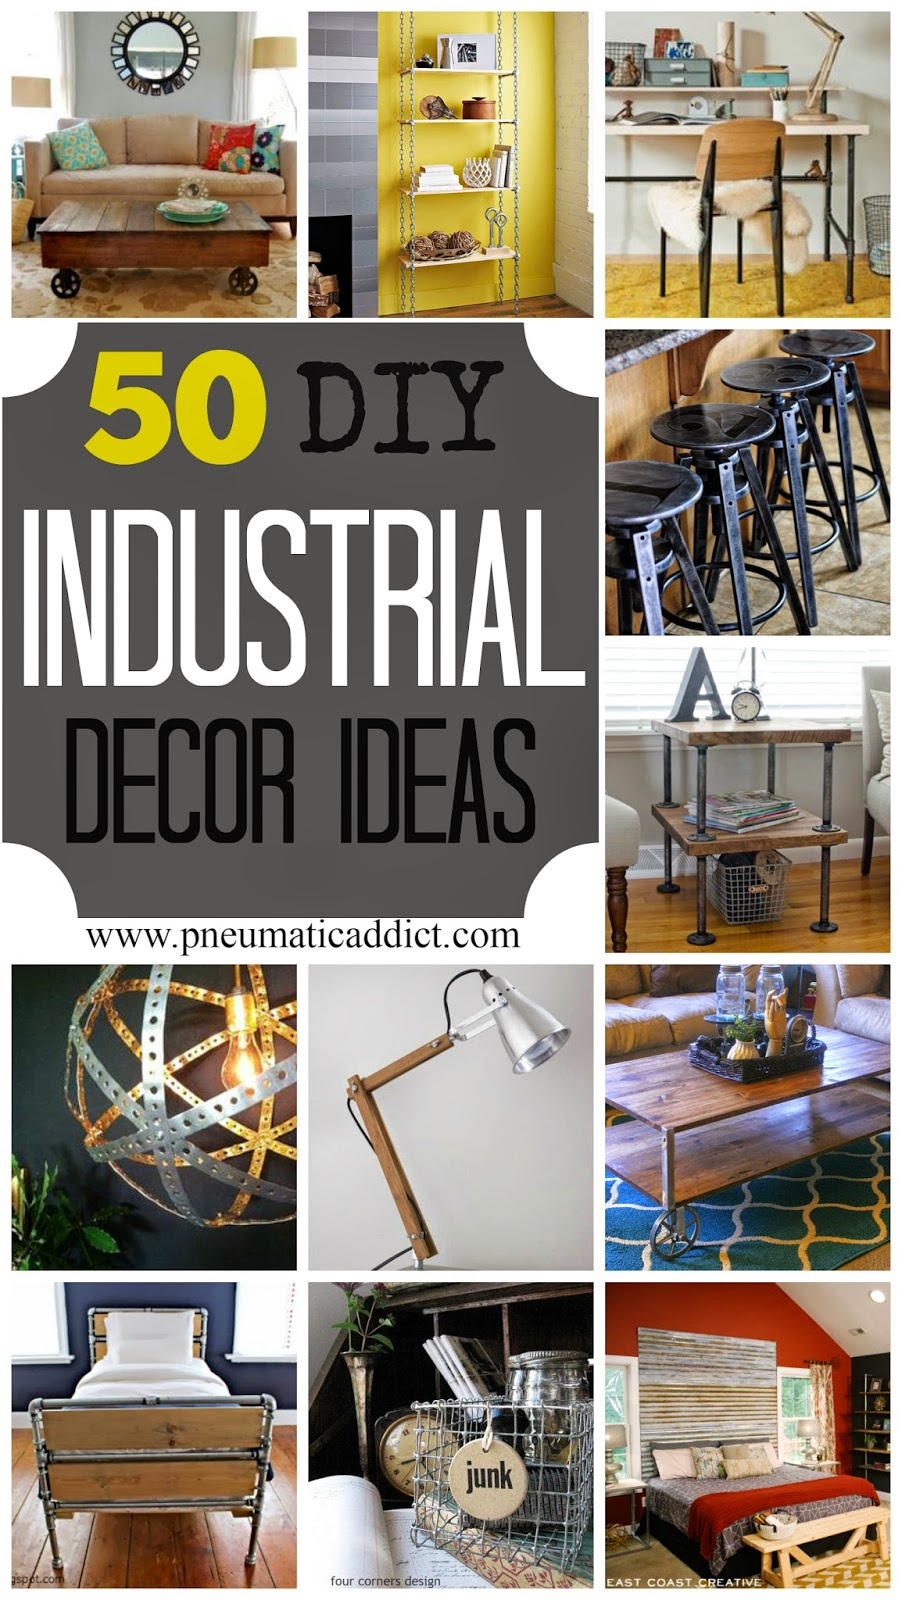 50 Diy Industrial Decor Ideas Pneumatic Addict